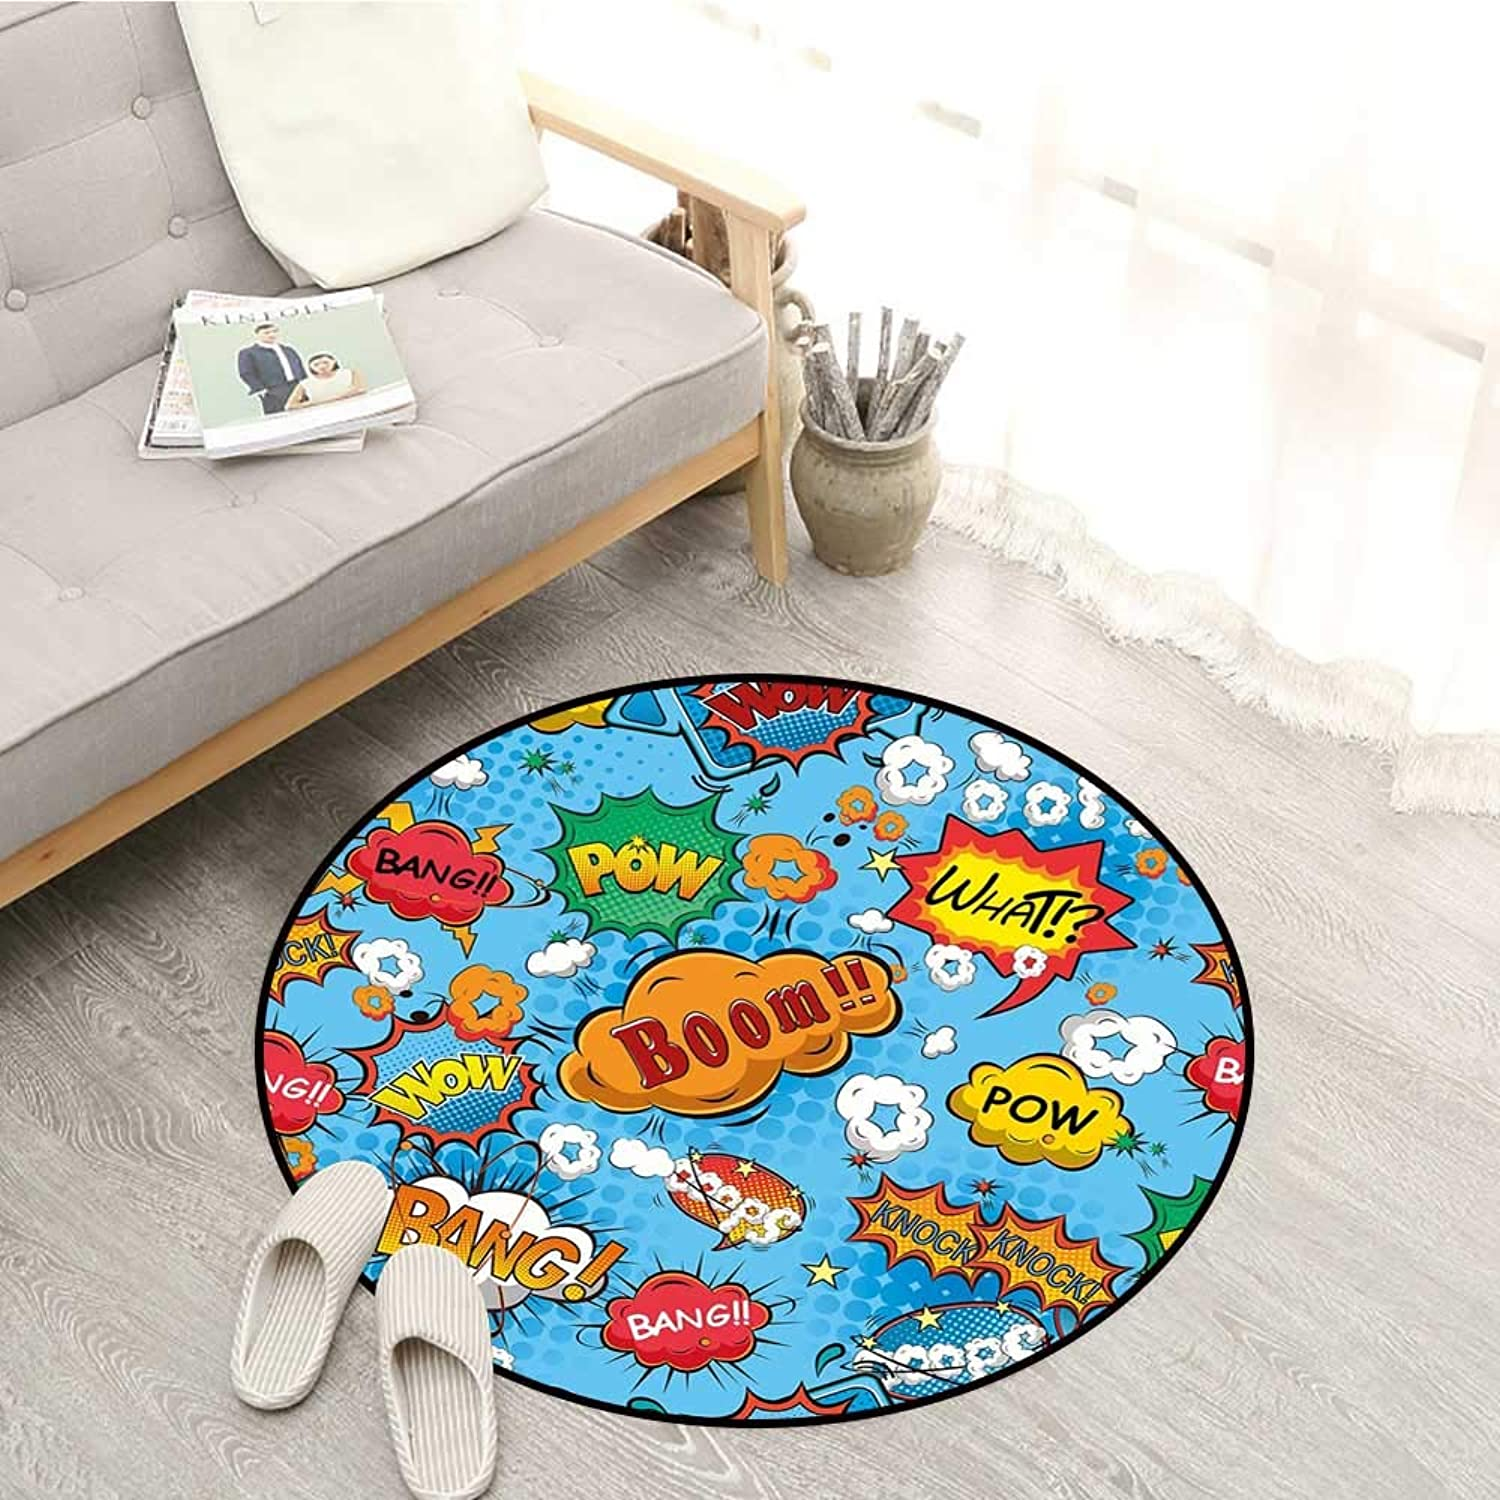 Superhero Skid-Resistant Rugs colorful Comic Style Icons Effects Boom Scream Magazine Signs Pop Art Illustarion Sofa Coffee Table Mat 3'11  Multicolor